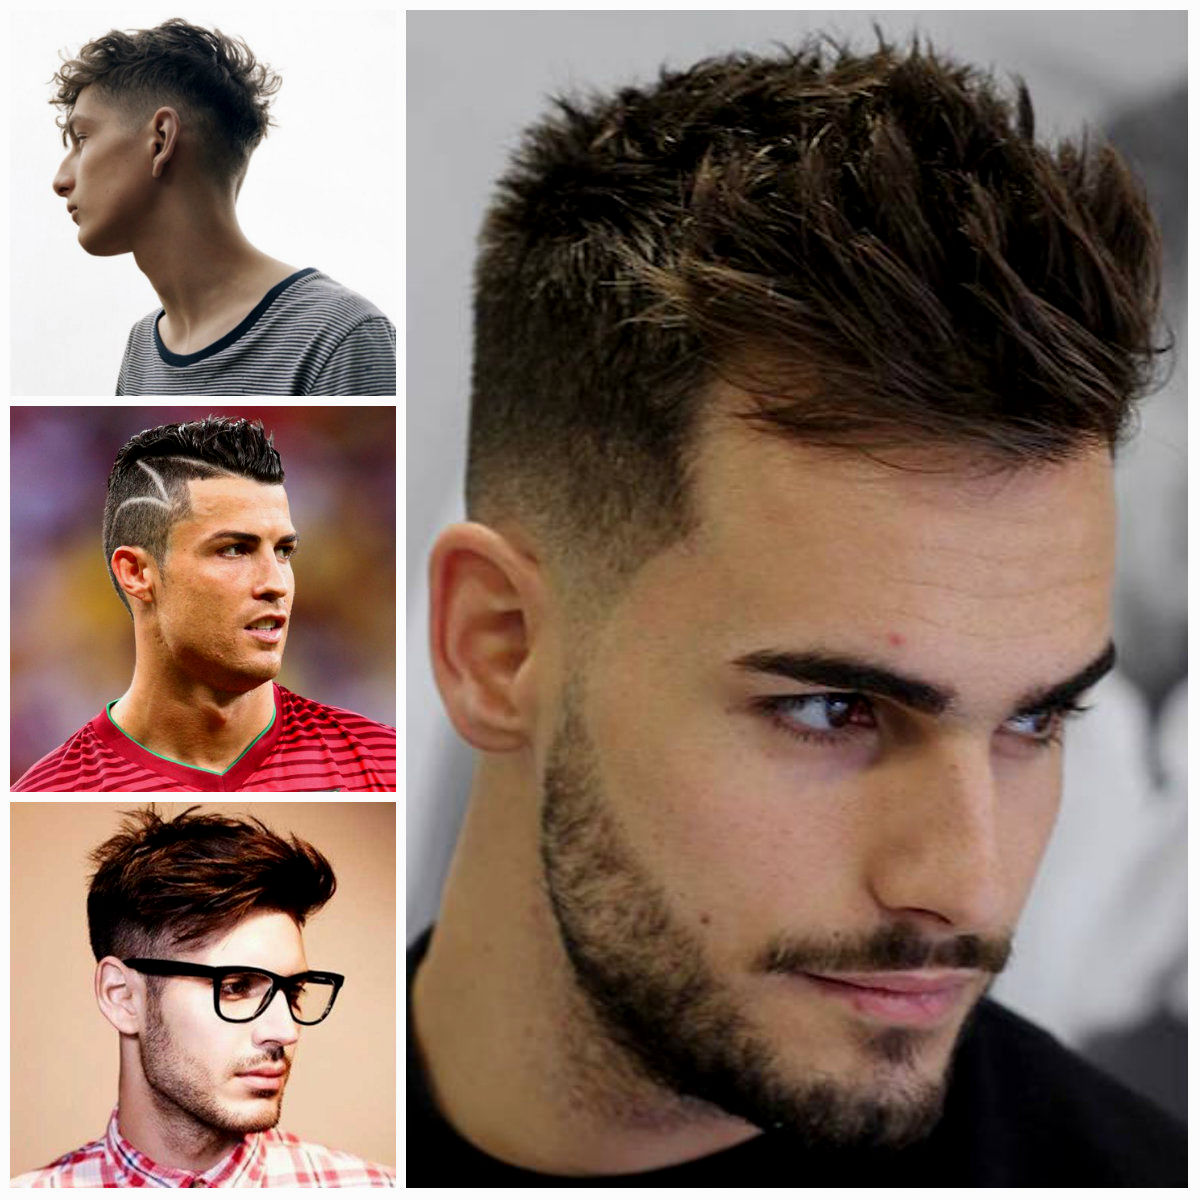 Lovely Men Hairstyles Light Hair Model Top Men Hairstyles Light Hair Image